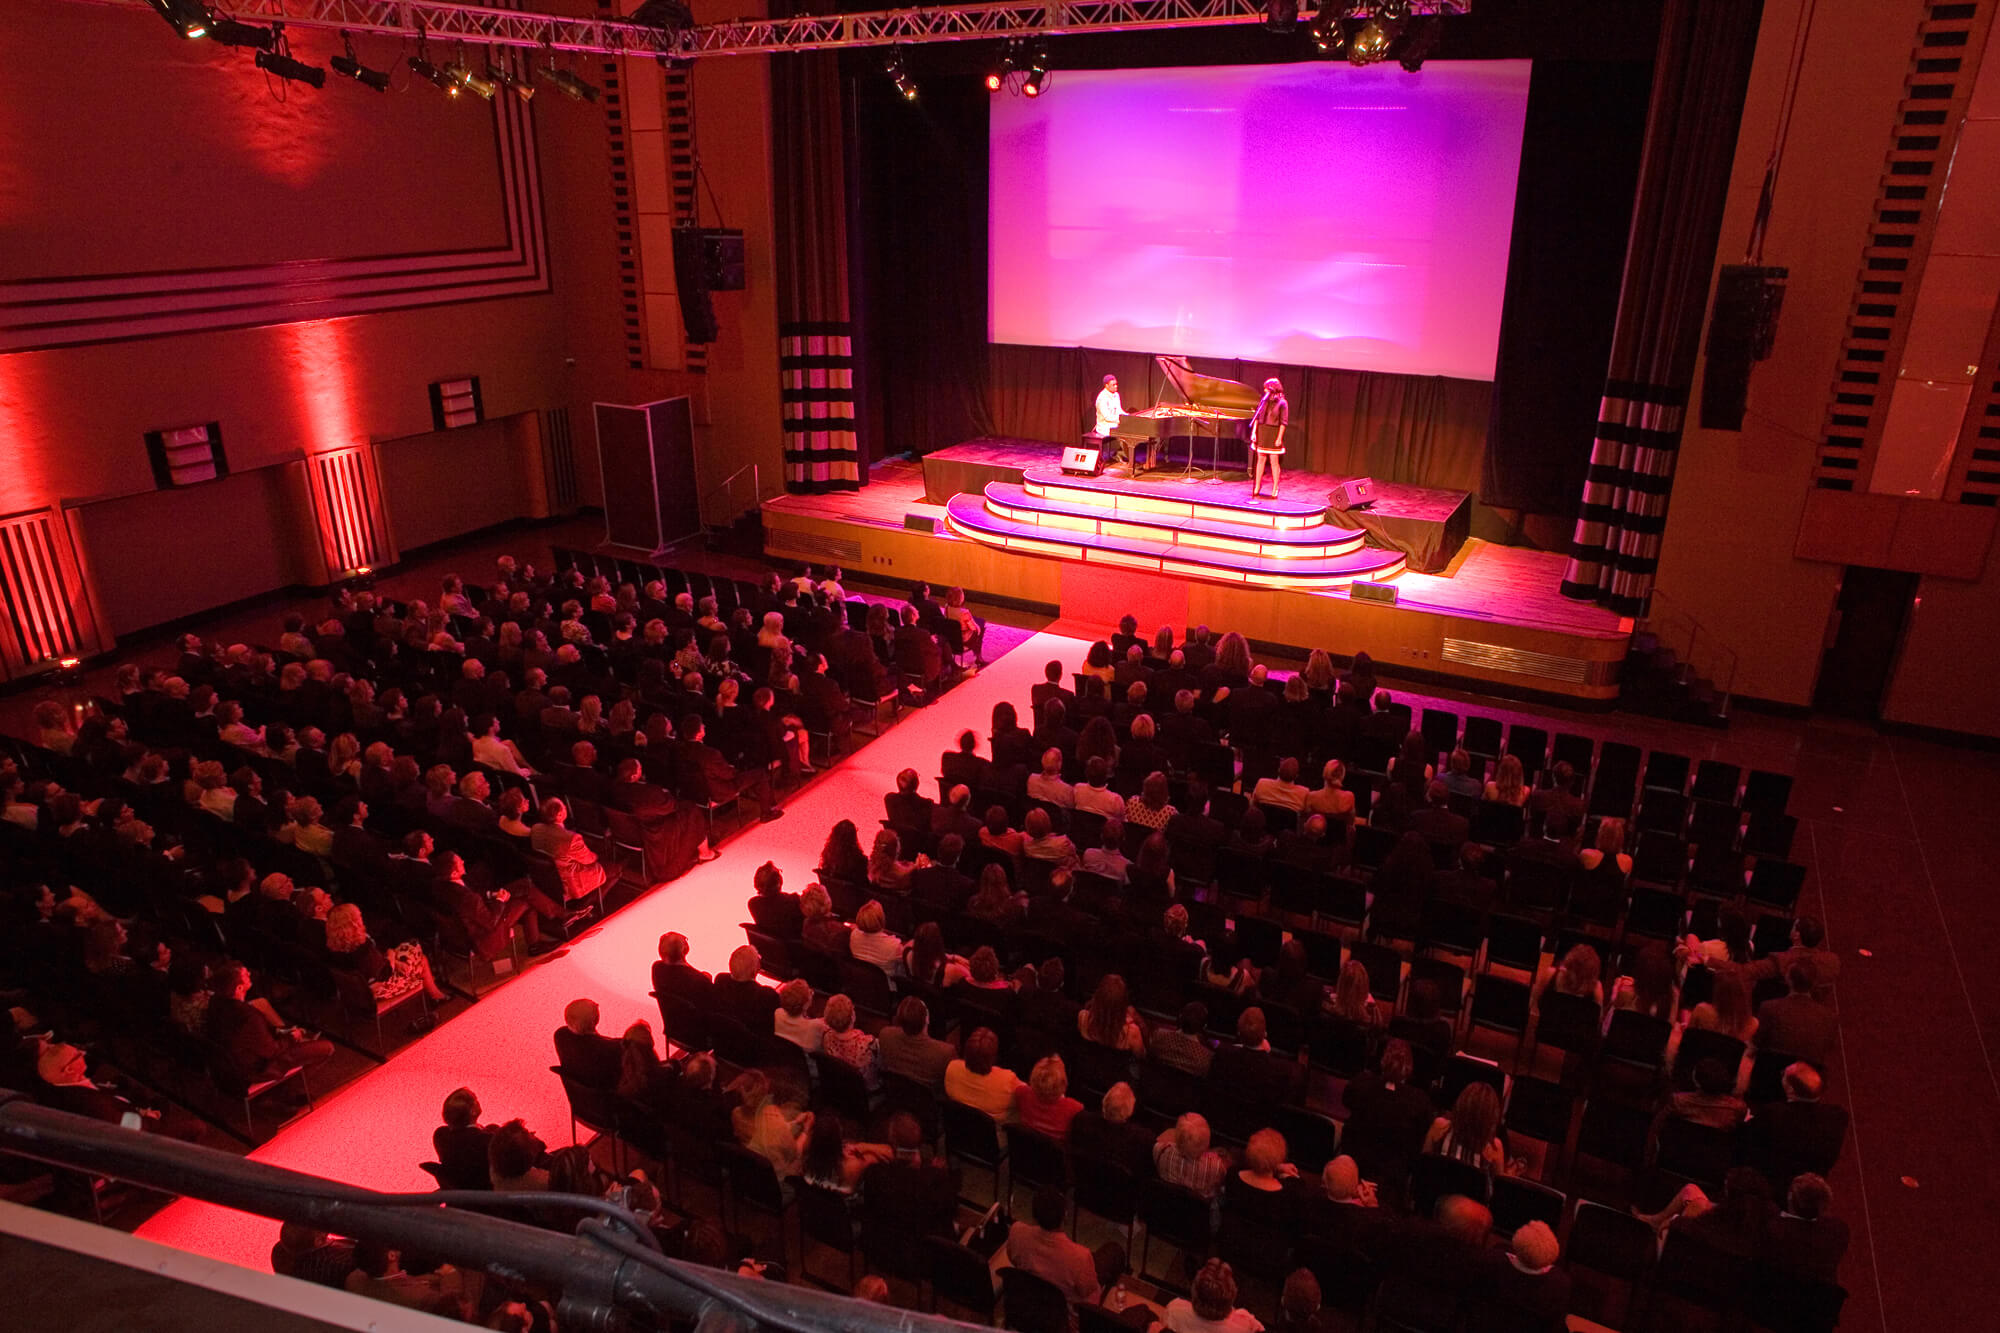 The Carlu Concert Hall filled with rows of guests facing a stage with a grand piano, pianist and woman on stage